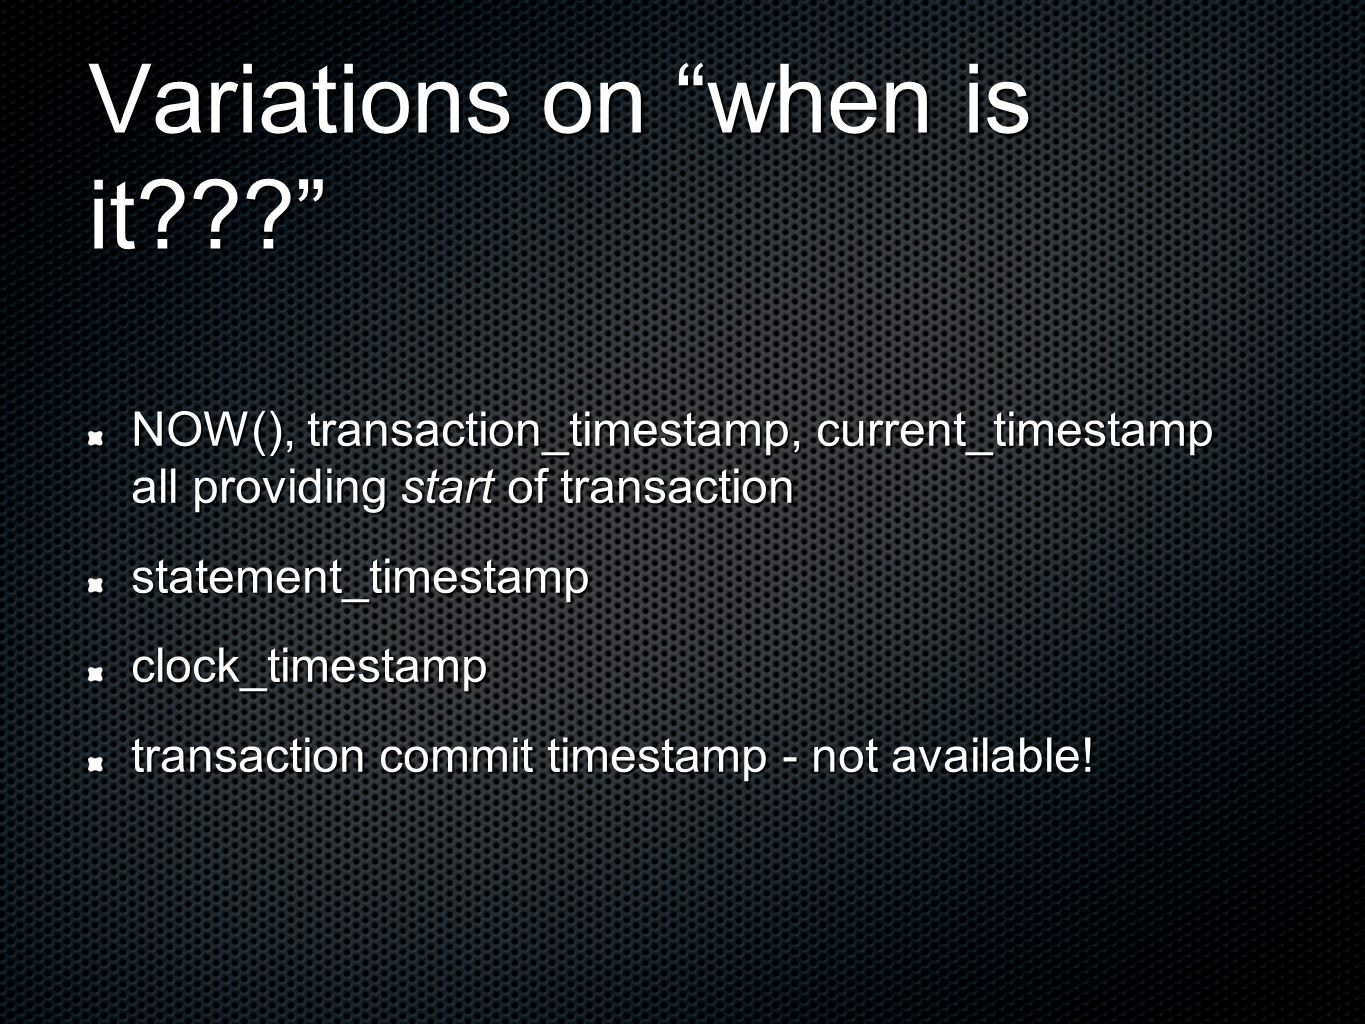 Variations on when is it NOW(), transaction_timestamp, current_timestamp all providing start of transaction statement_timestampclock_timestamp transaction commit timestamp - not available!